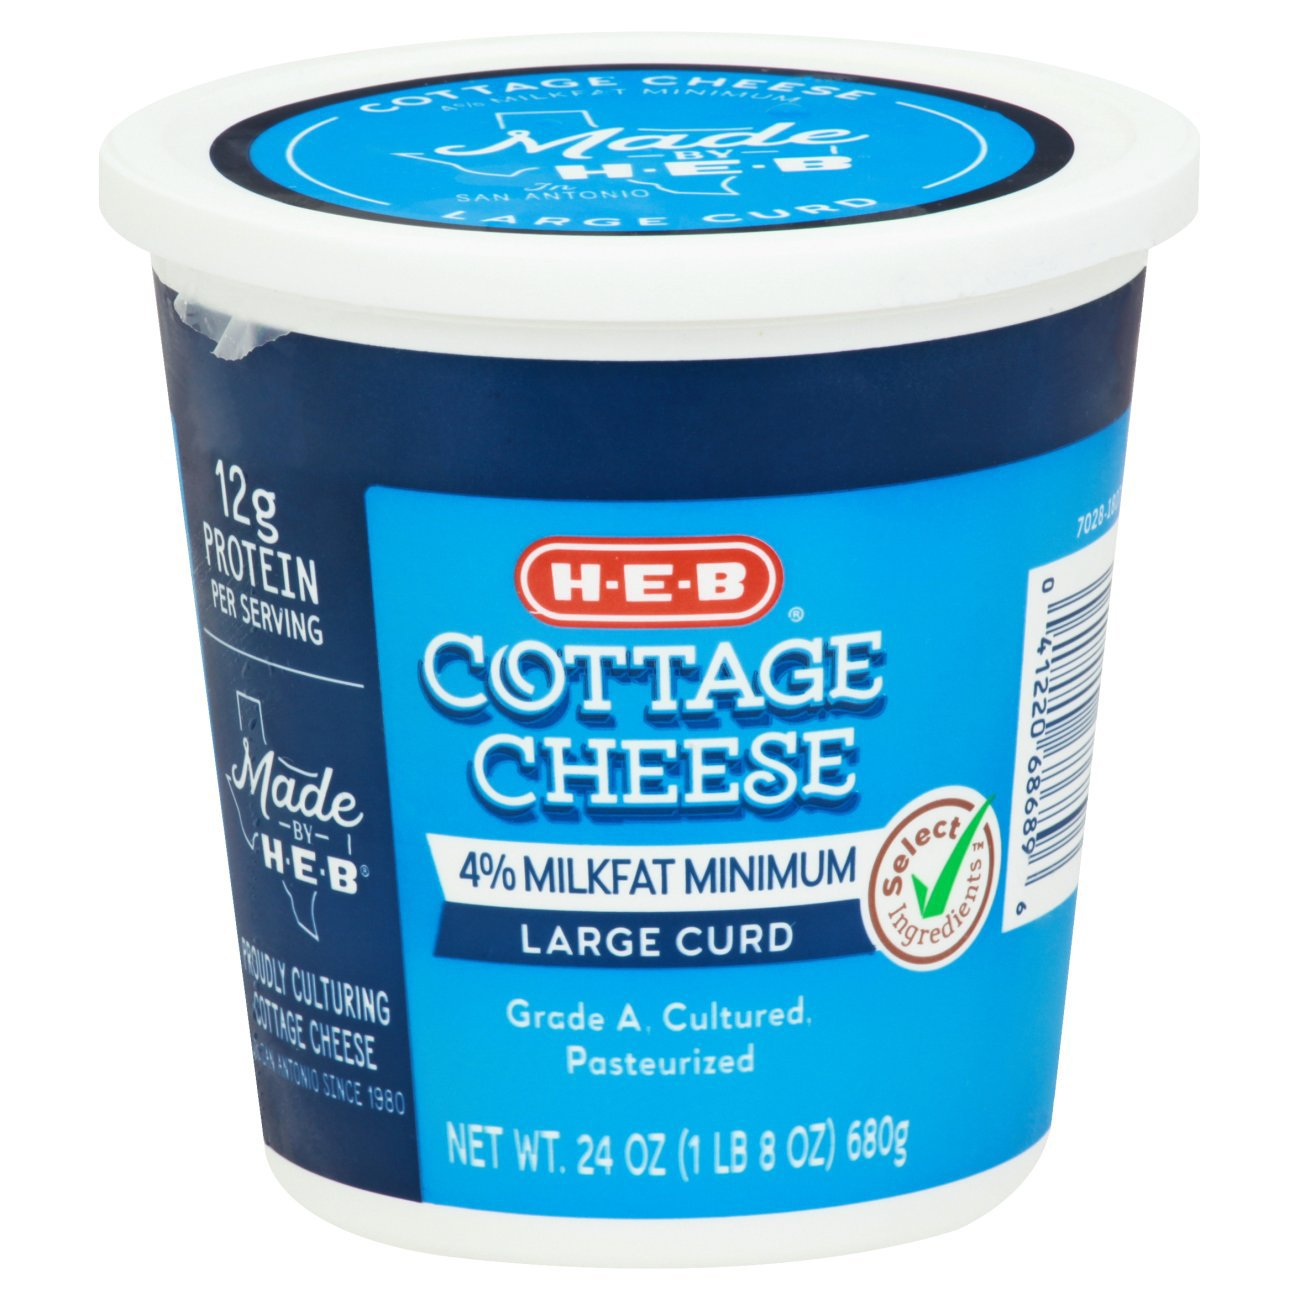 H-E-B Select Ingredients Large Curd Cottage Cheese - Shop ...